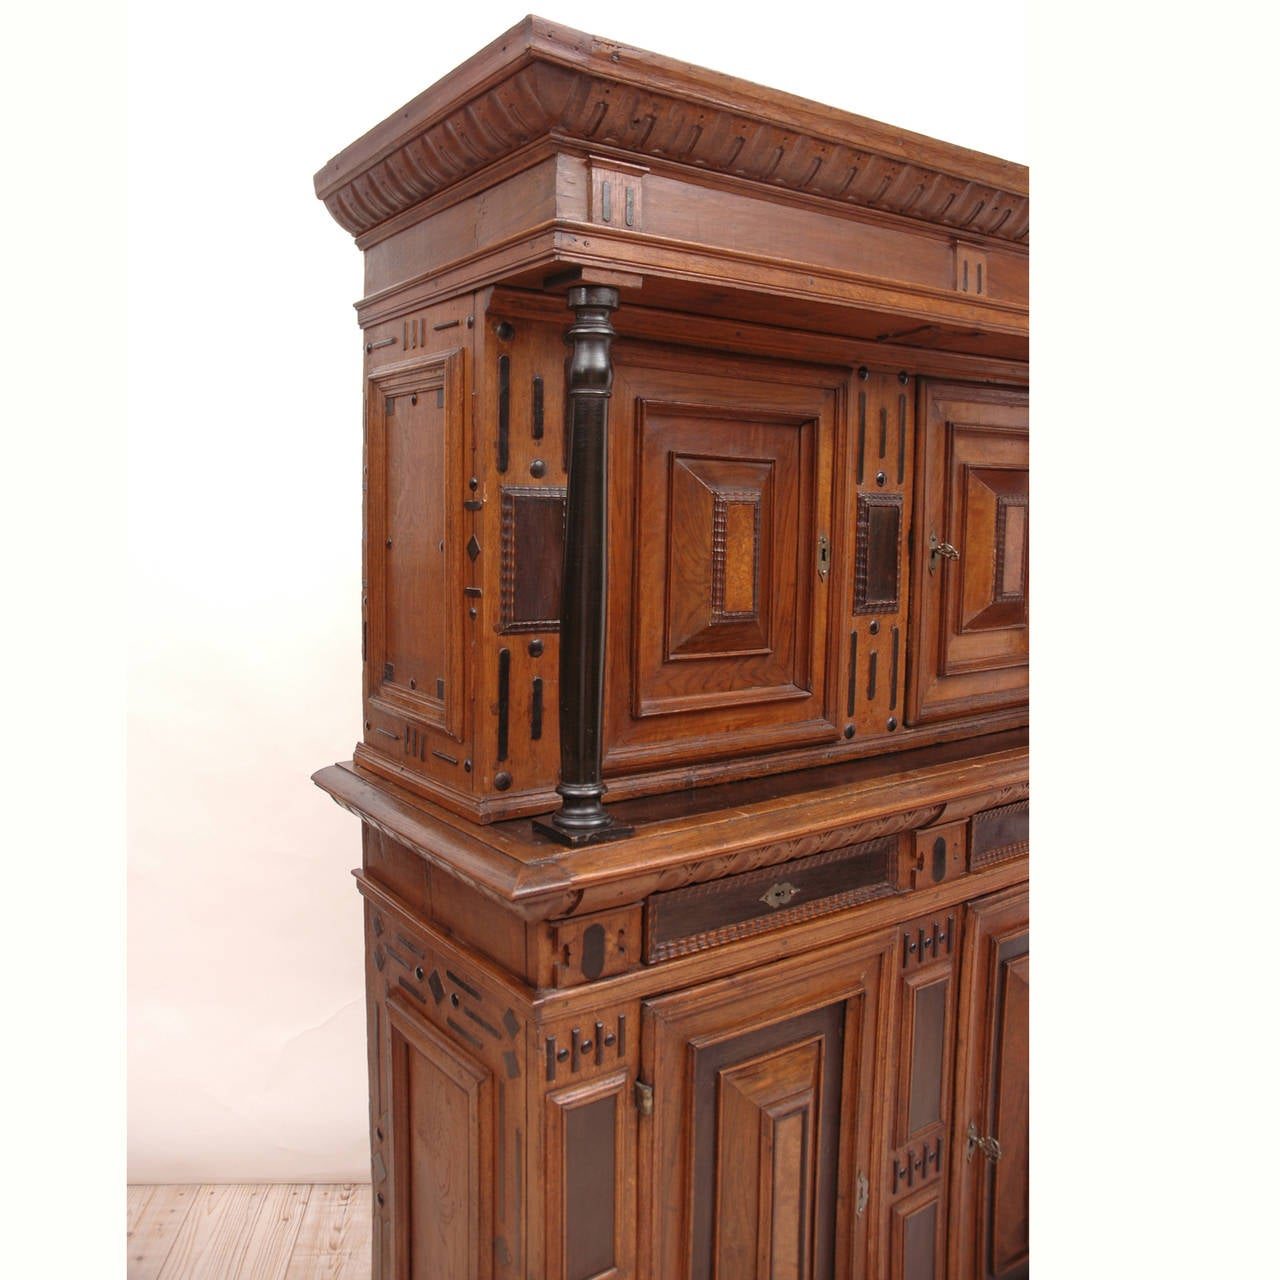 hanging kitchen cabinets baroque cupboard third quarter of the 17th century 1560